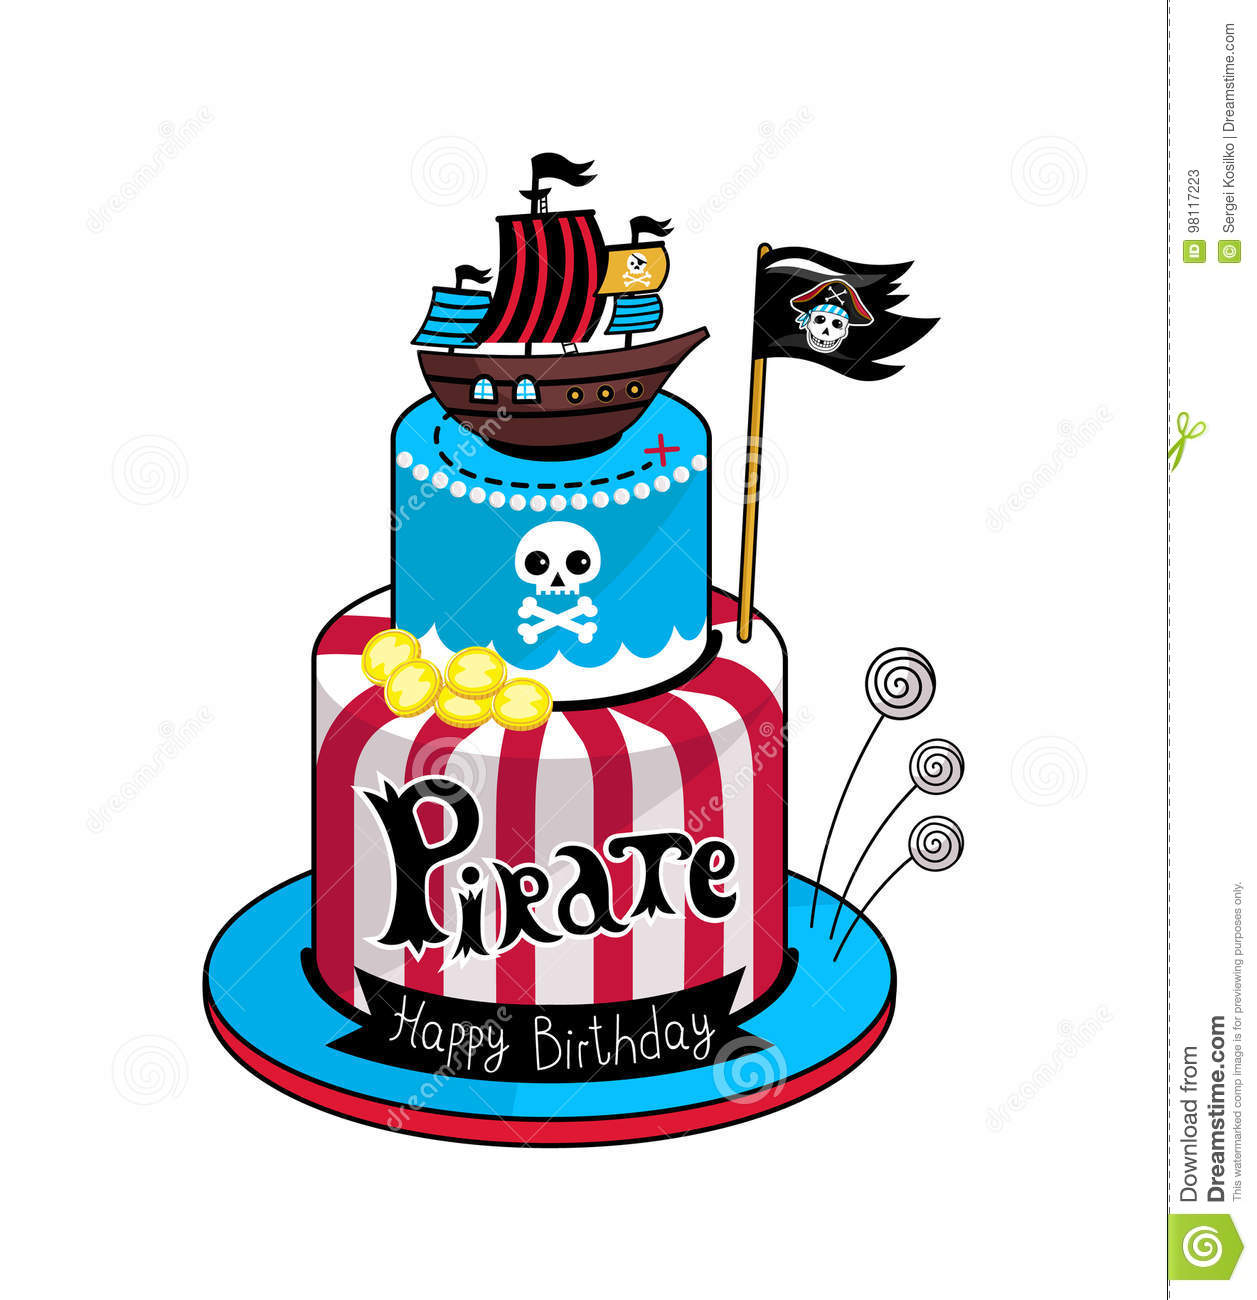 Magnificent Pirate Party Cake Vector Icon Stock Vector Illustration Of Birthday Cards Printable Inklcafe Filternl